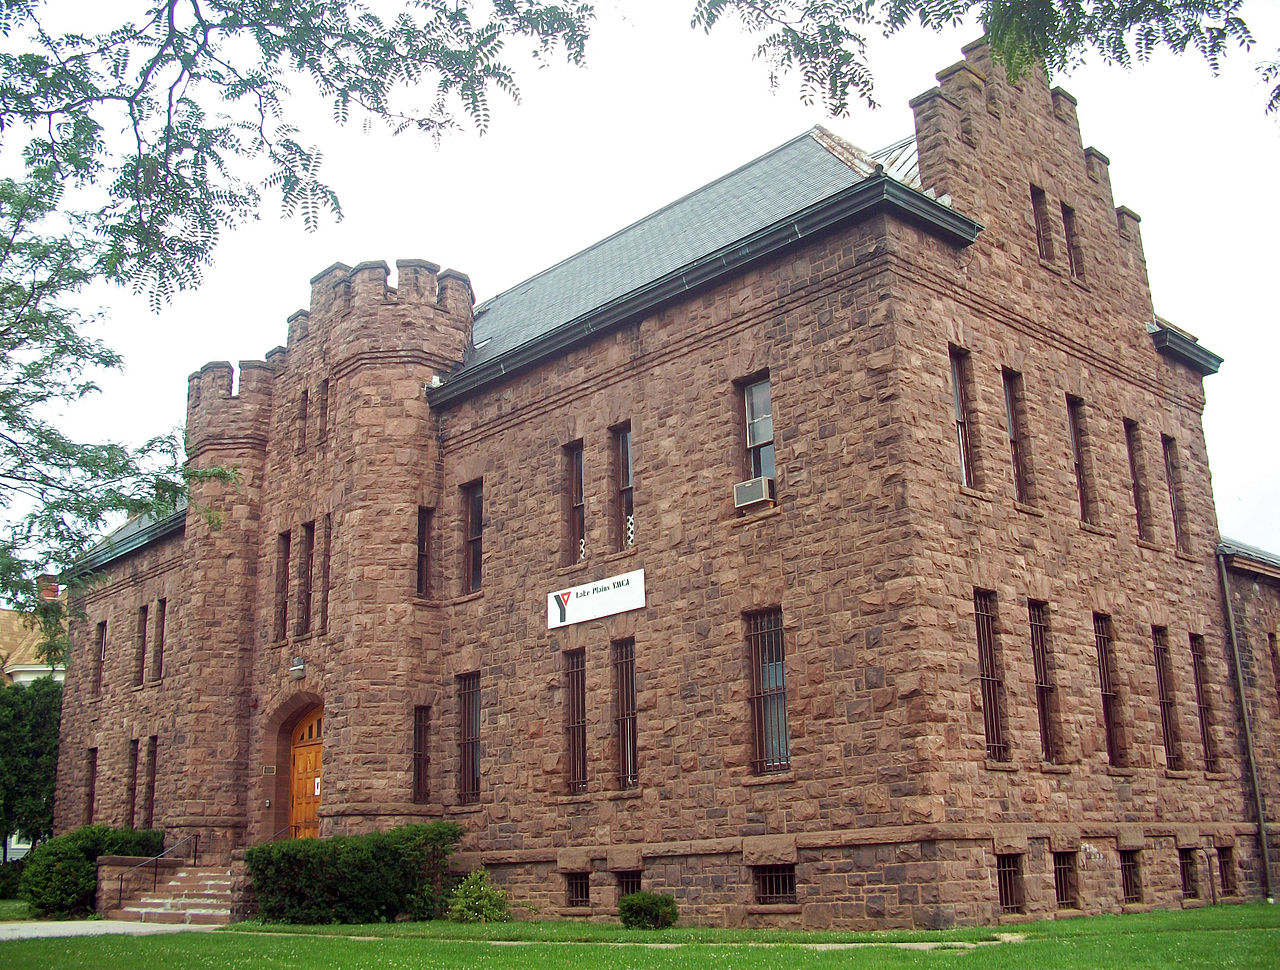 Medina Armory was built in 1901 and is now the Orleans County YMCA.